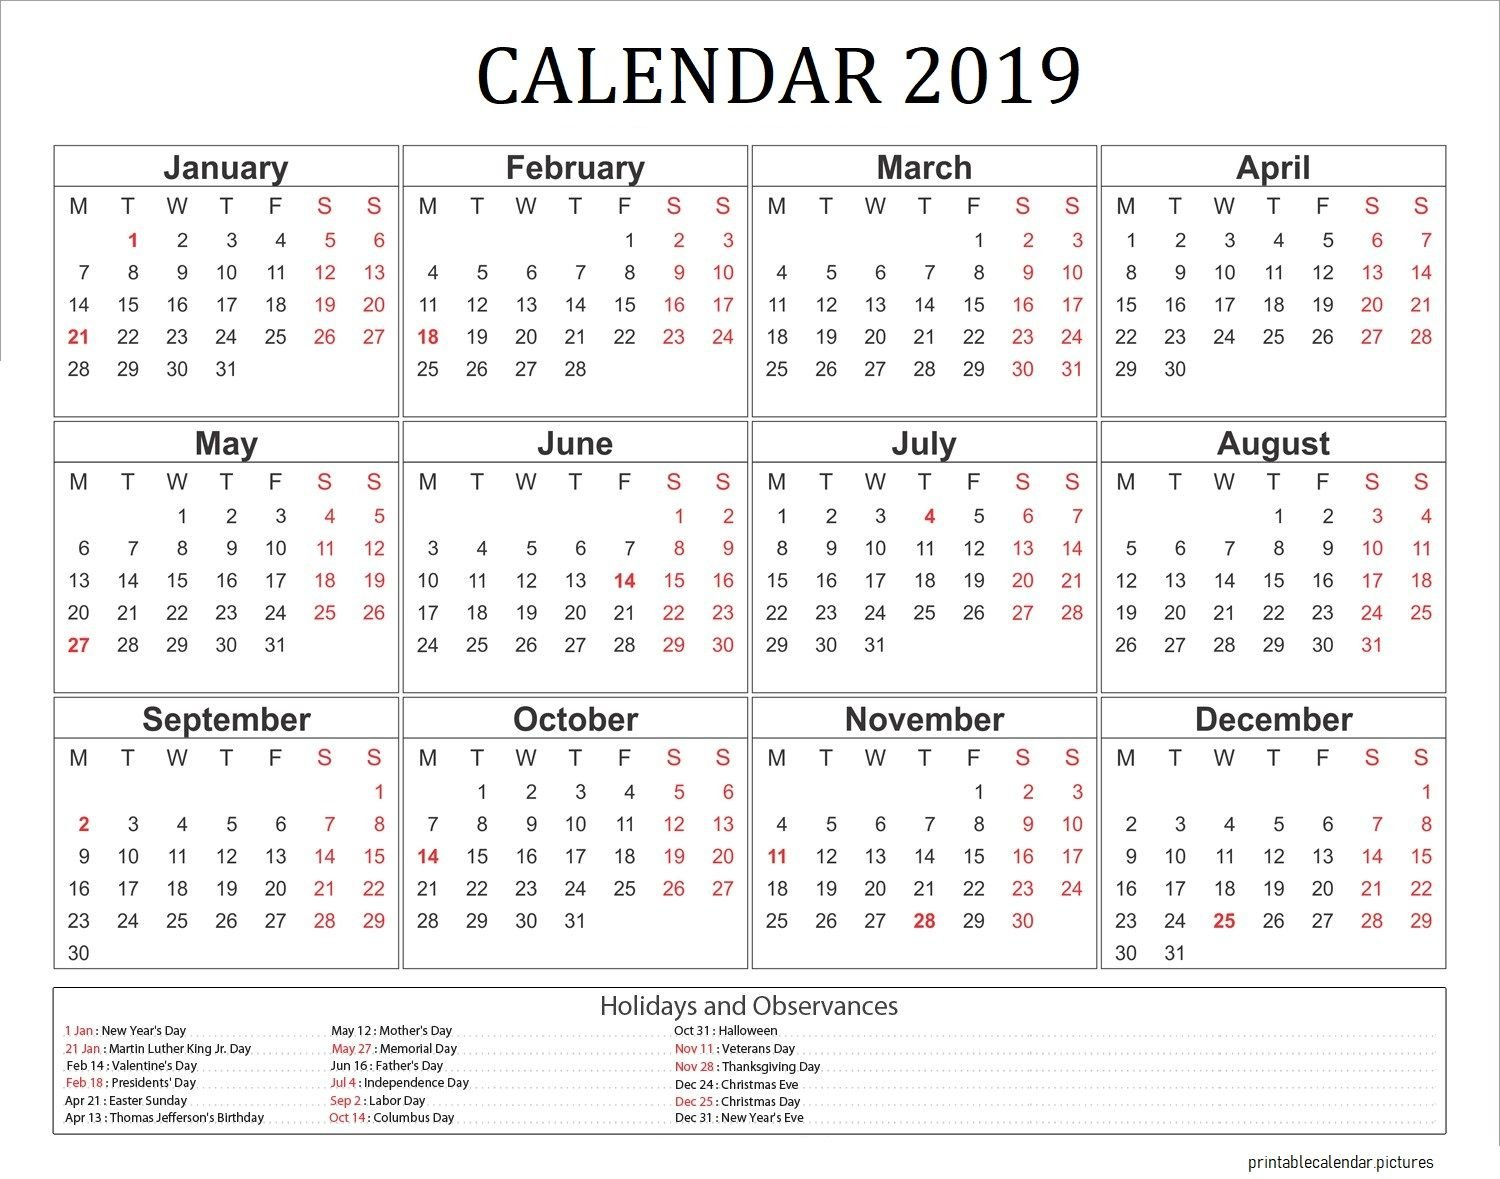 2019 Calendar With Holidays Usa | 2019 Calendar Holidays | Printable Calendar 2019 Holidays Usa